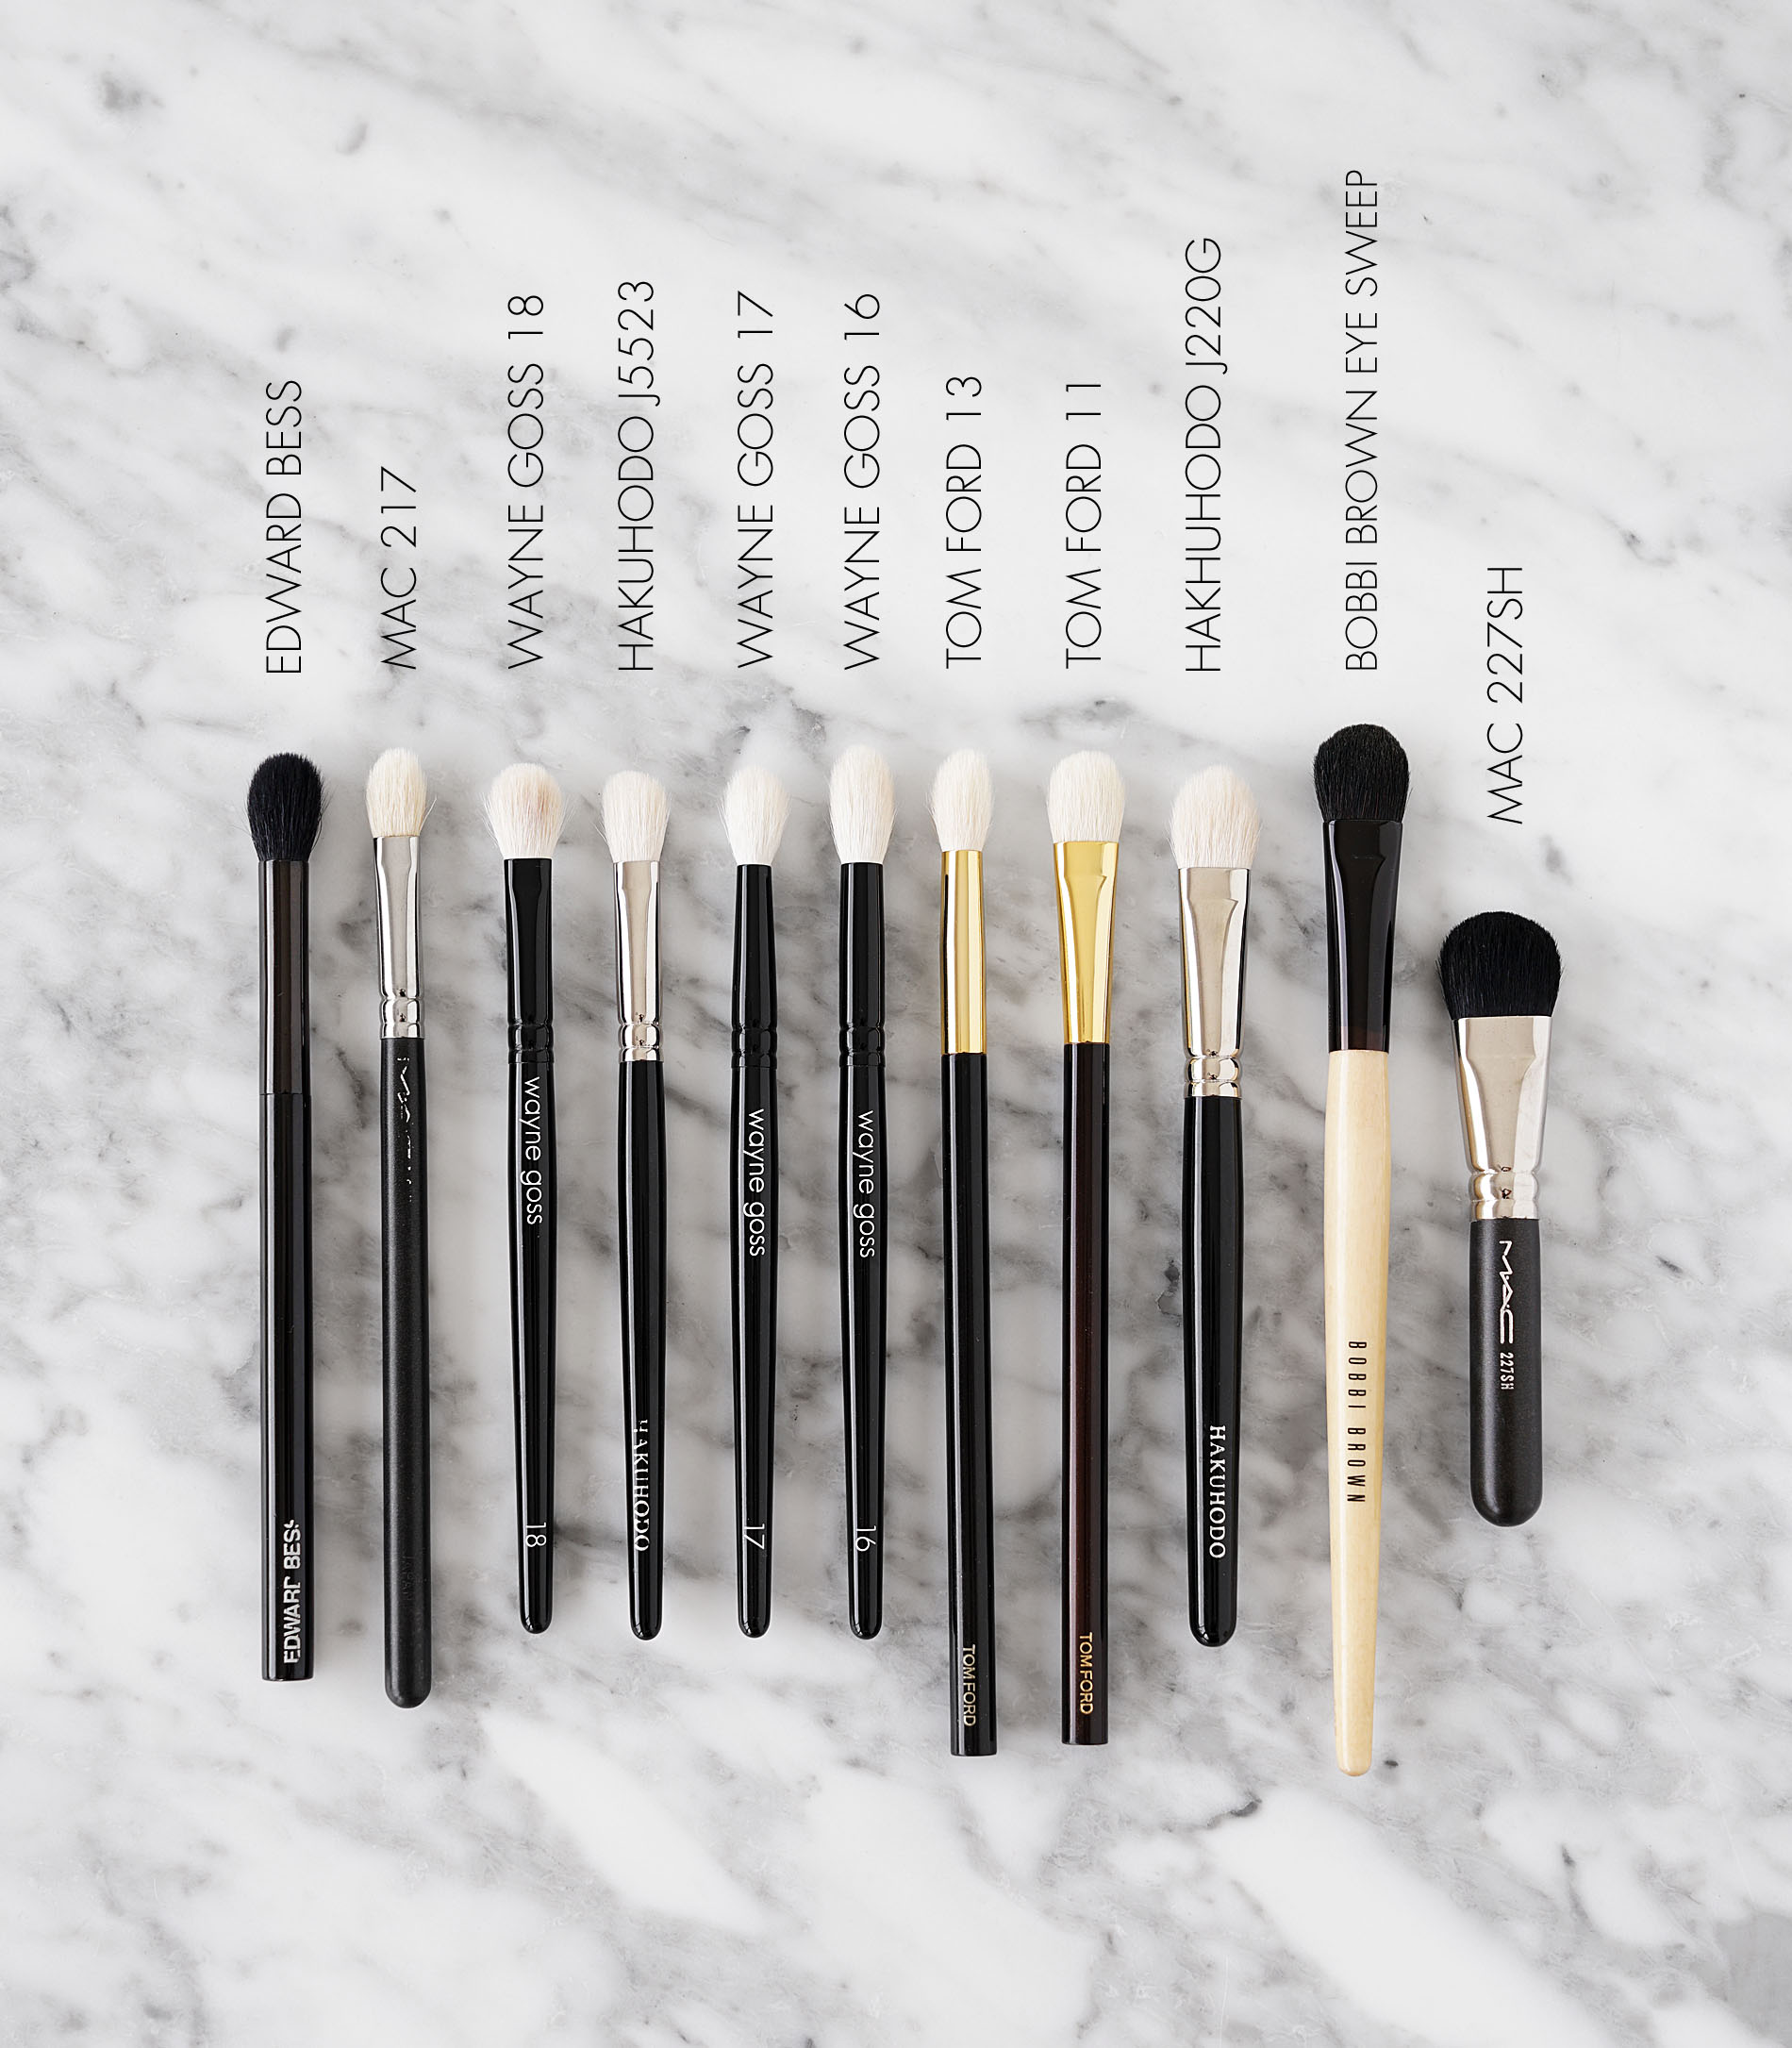 217 Synthetic Blending Brush by MAC #5